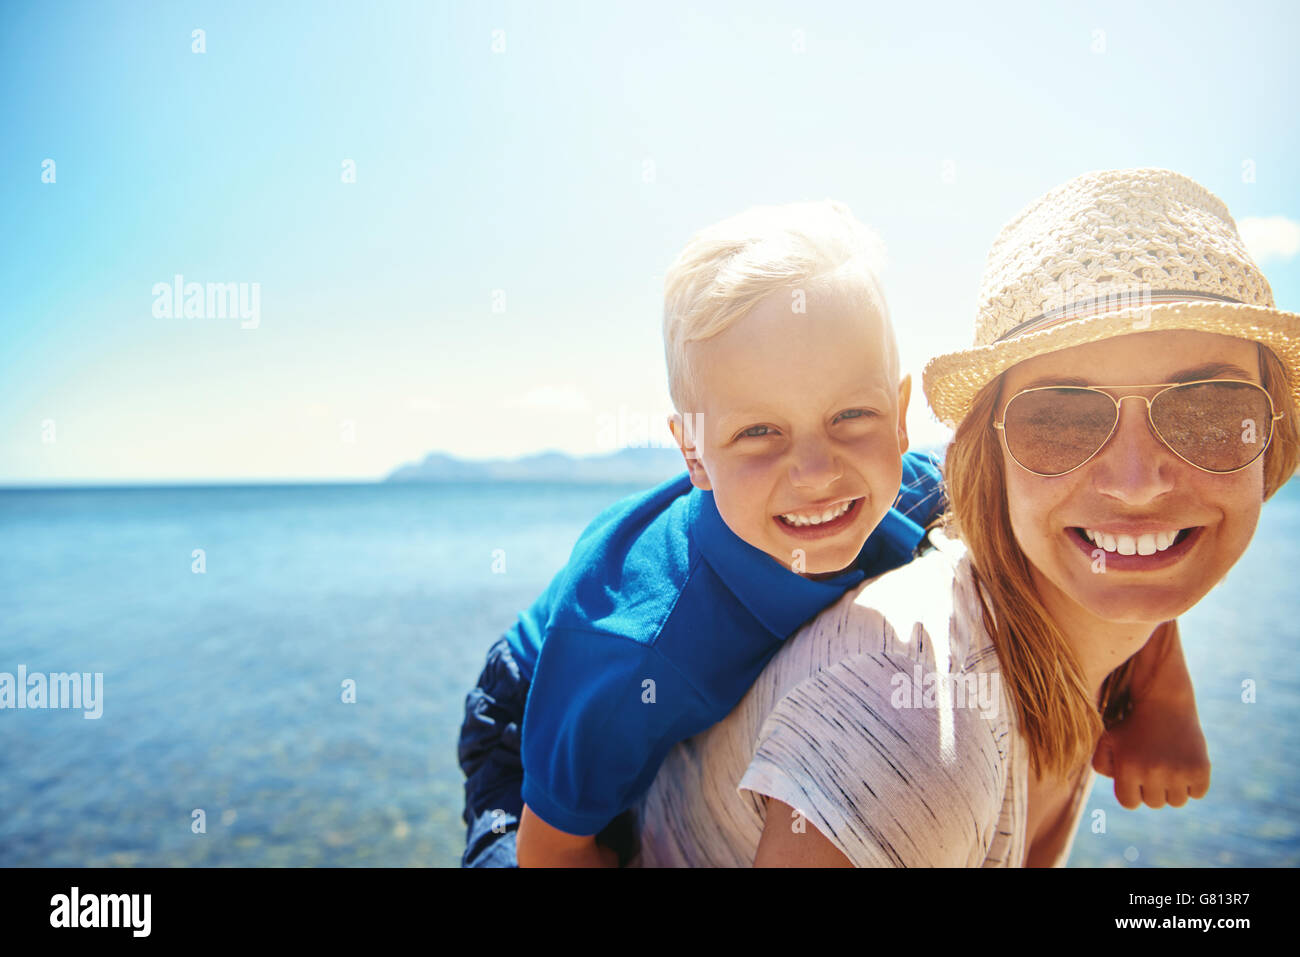 Happy little boy getting a piggy back ride de sa belle mère souriant en chapeau et des lunettes de soleil qu'ils Photo Stock